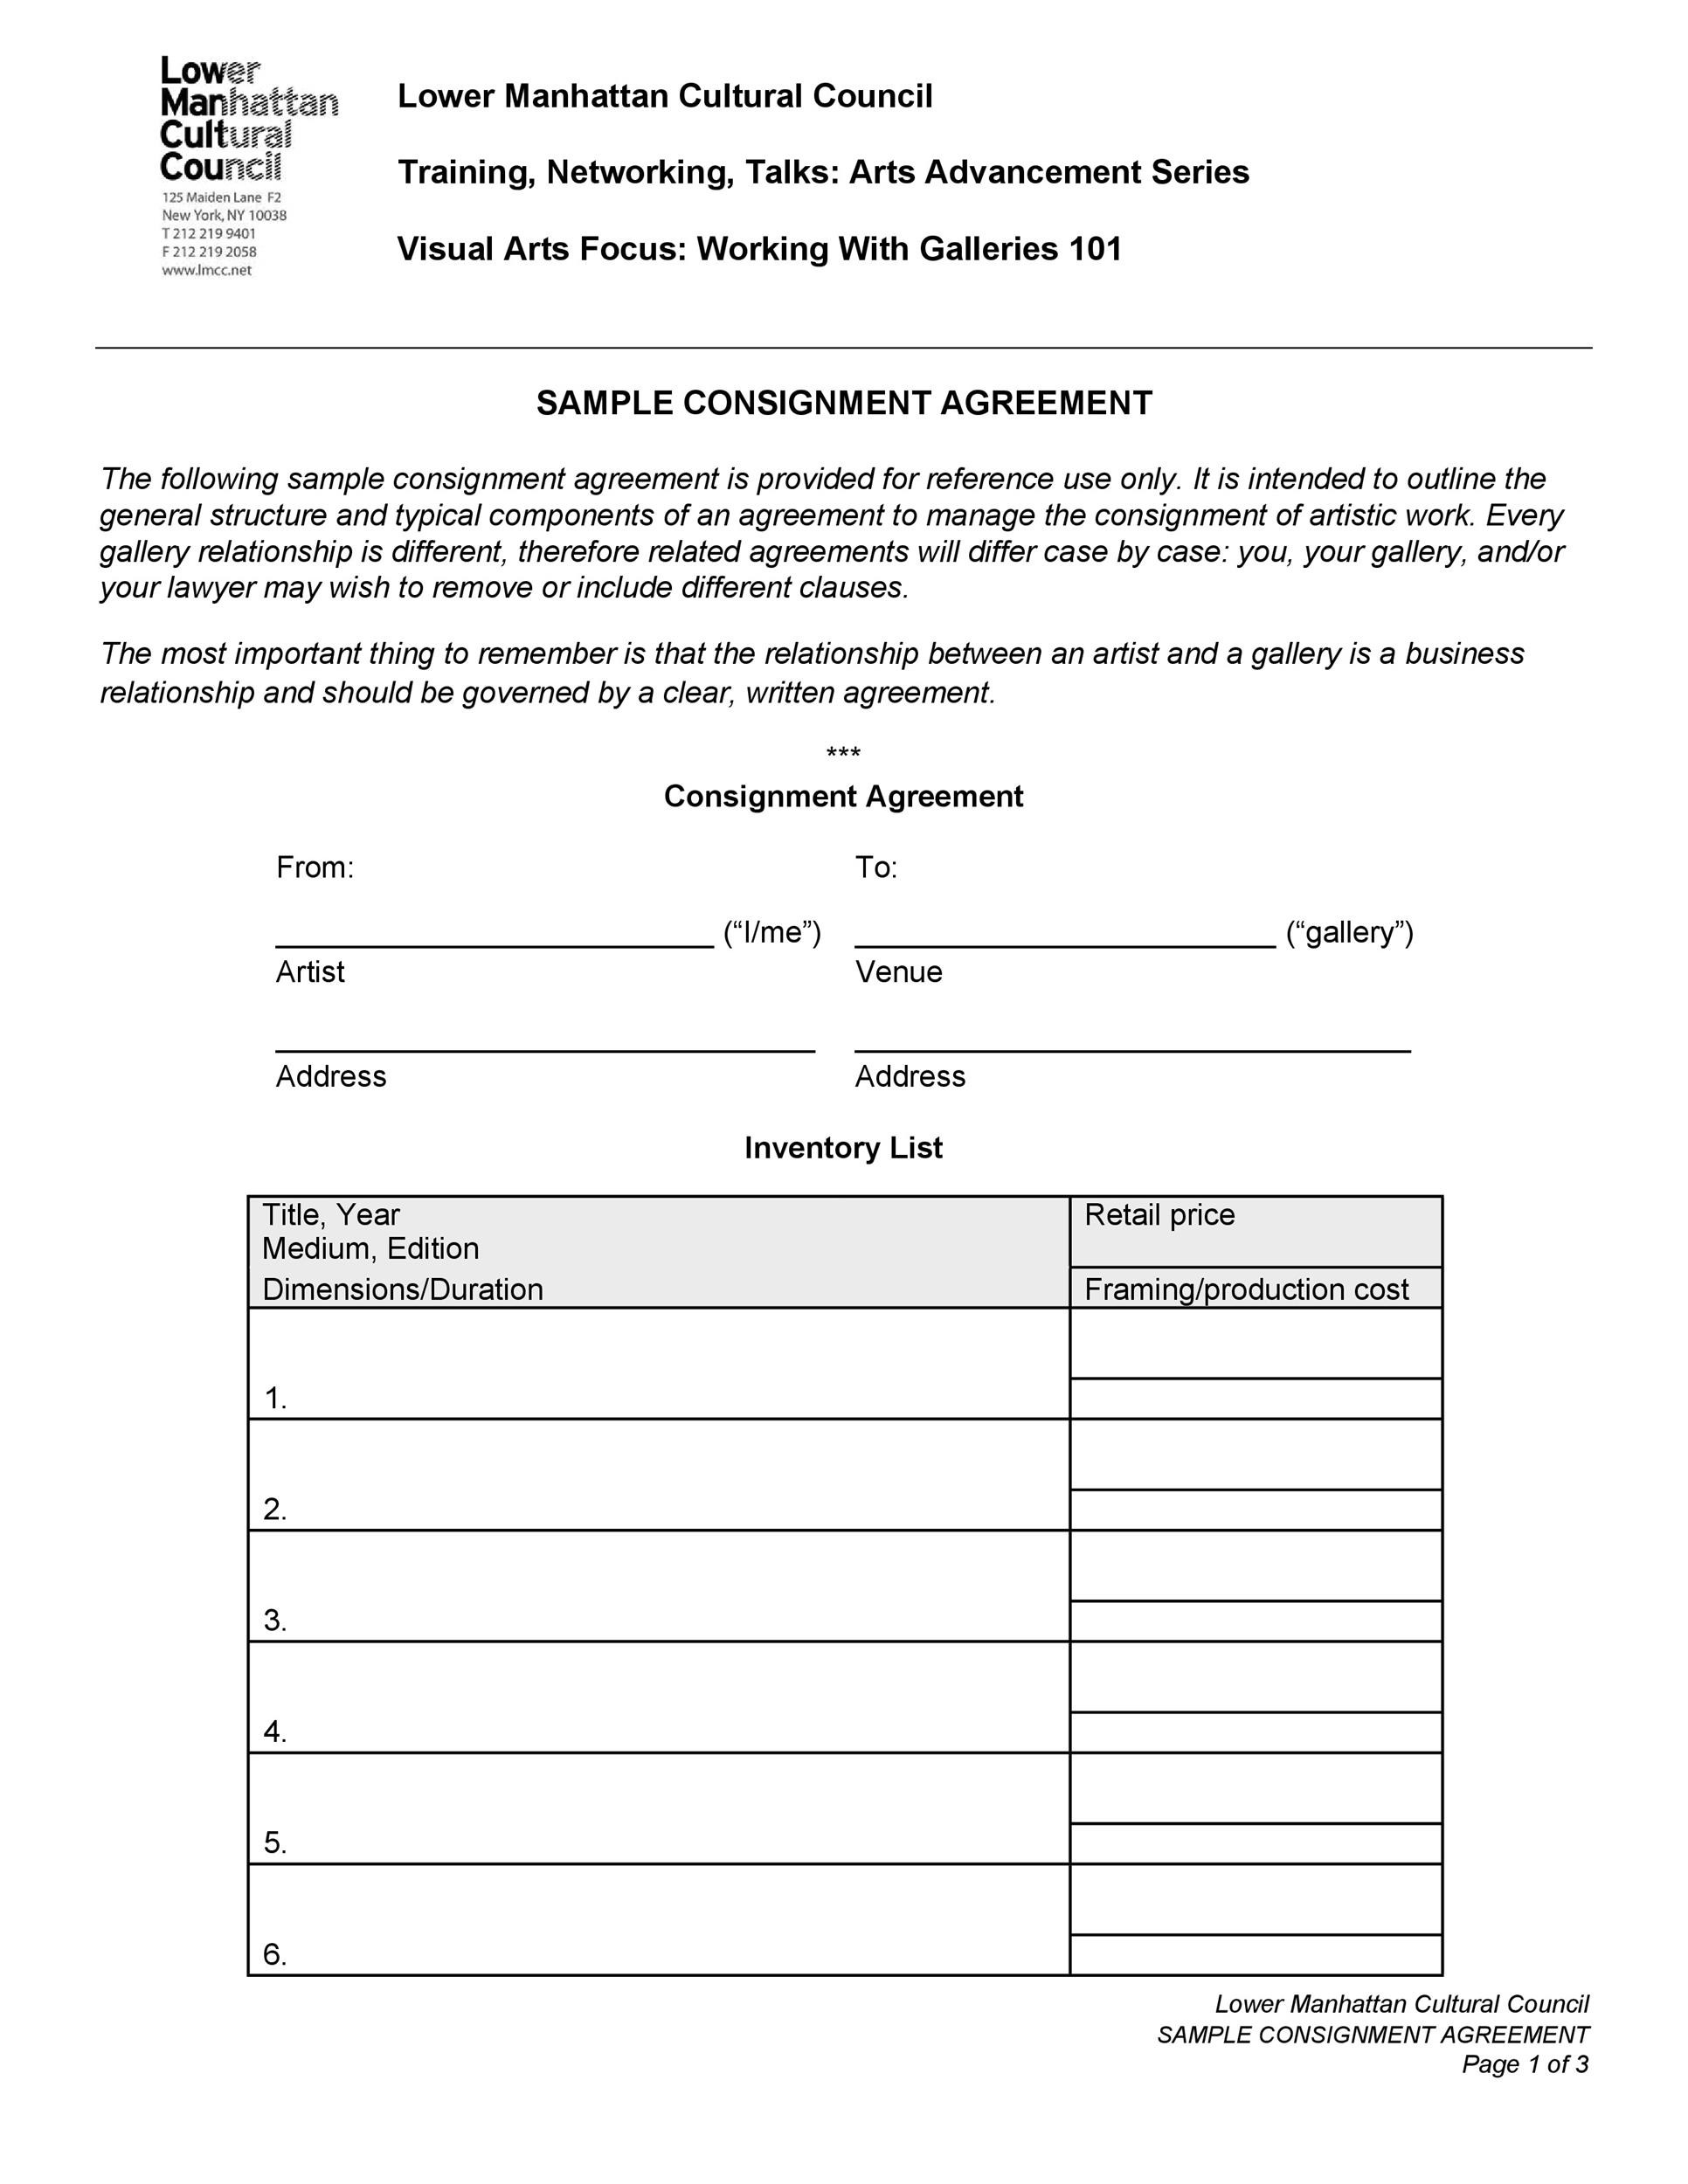 Charming Printable Consignment Agreement Template 18 With Consignment Template